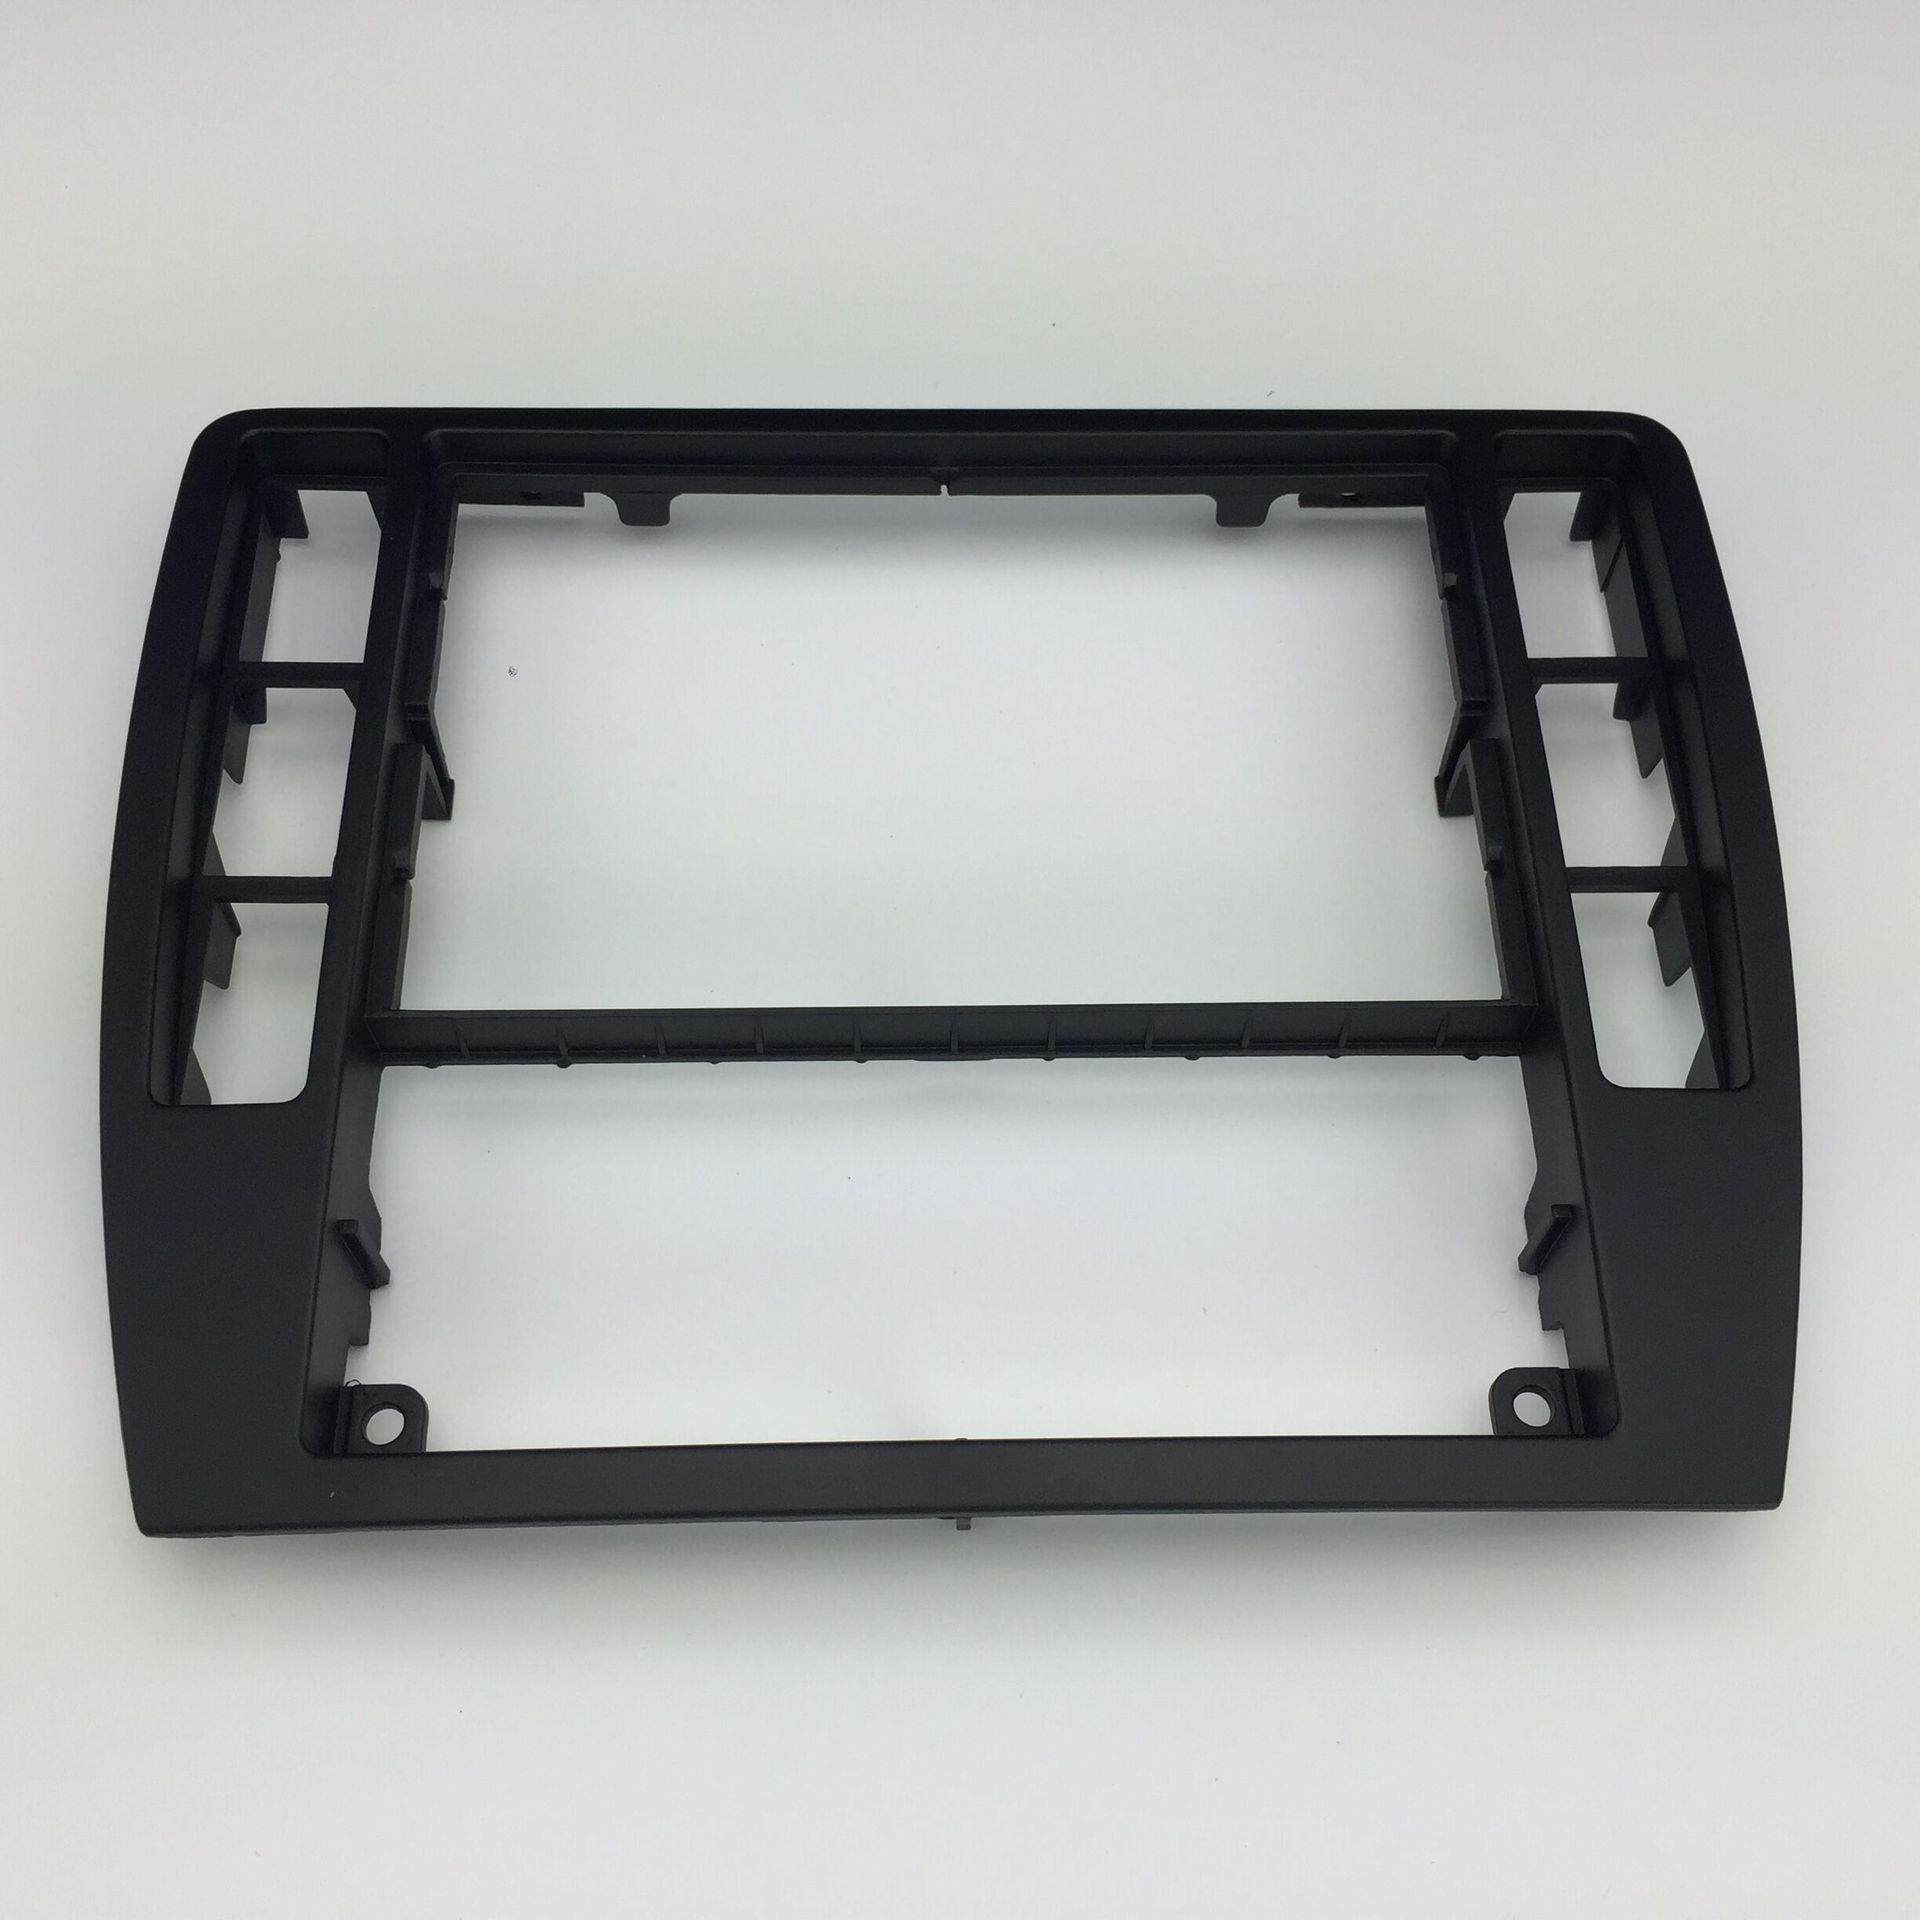 Car Dash Center Console Trim Bezel Panel Decorative Frame Radio Face Frame for VW PASSAT B5 01-05 3B0 858 069 Auto Accessories